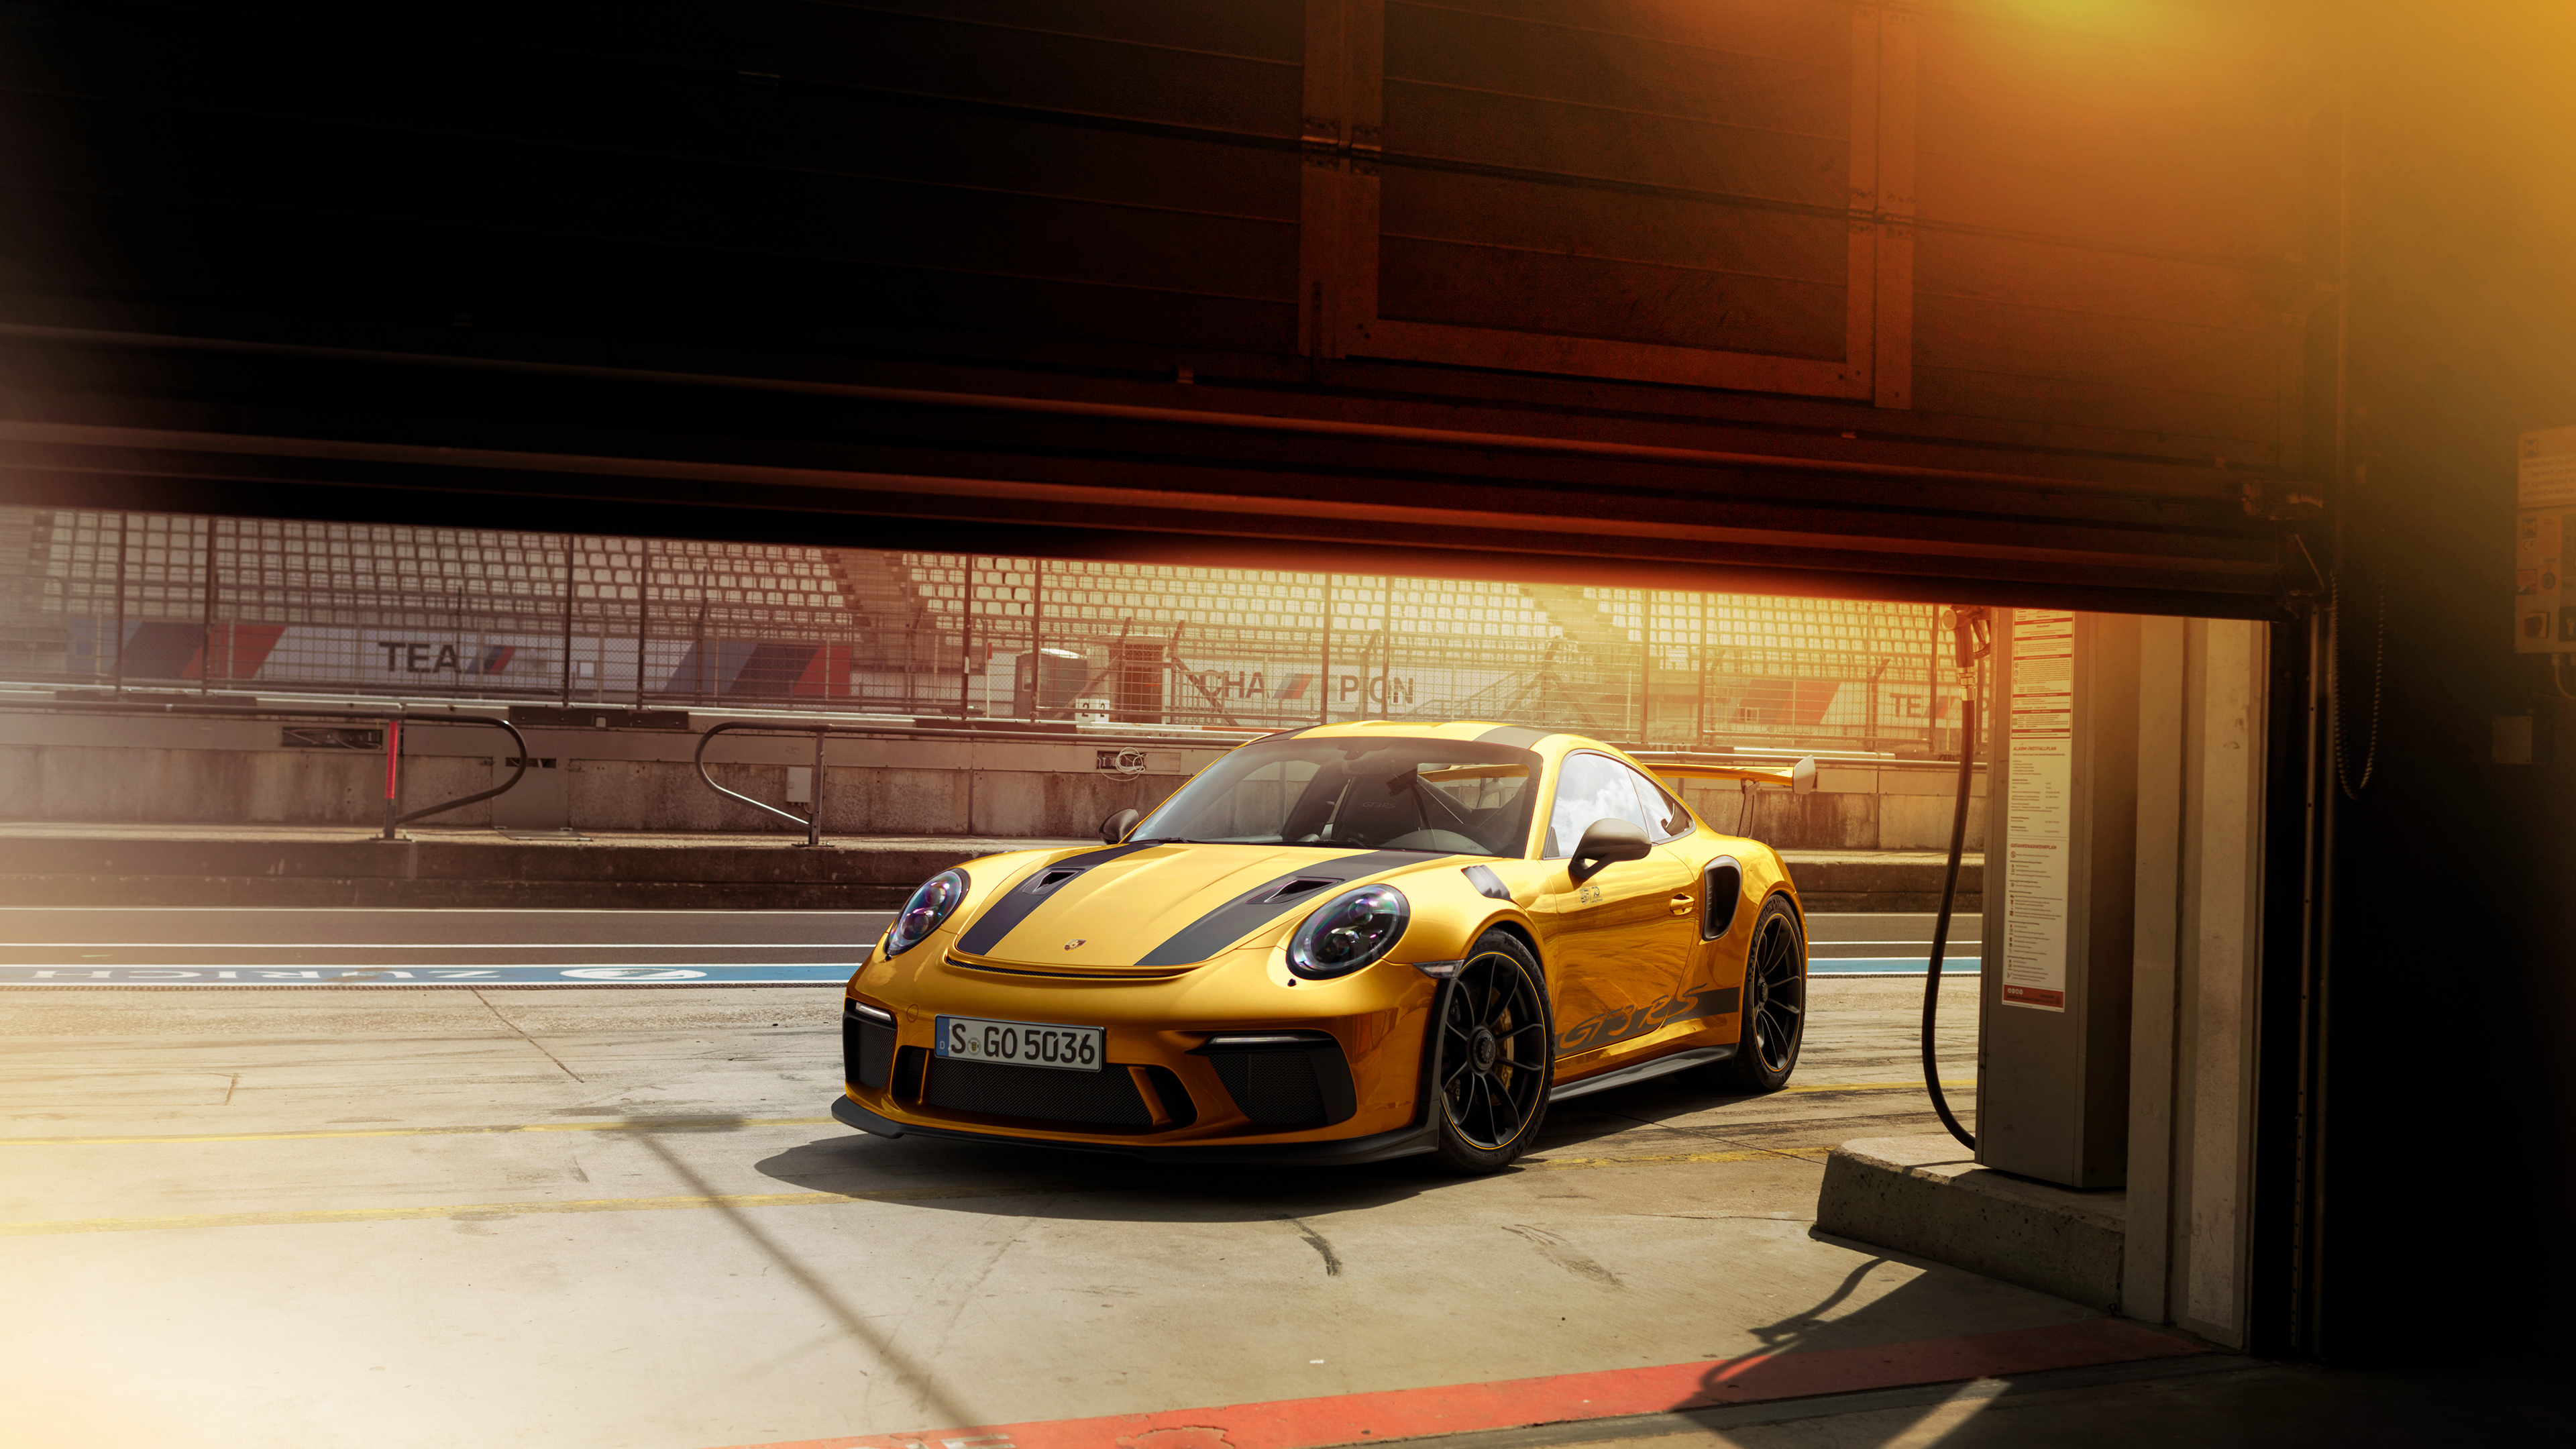 porsche 911gt3rs gold 4k 1541969153 - Porsche 911GT3RS Gold 4k - porsche wallpapers, porsche 911 wallpapers, porsche 911 gt3 r wallpapers, hd-wallpapers, cars wallpapers, behance wallpapers, 4k-wallpapers, 2018 cars wallpapers